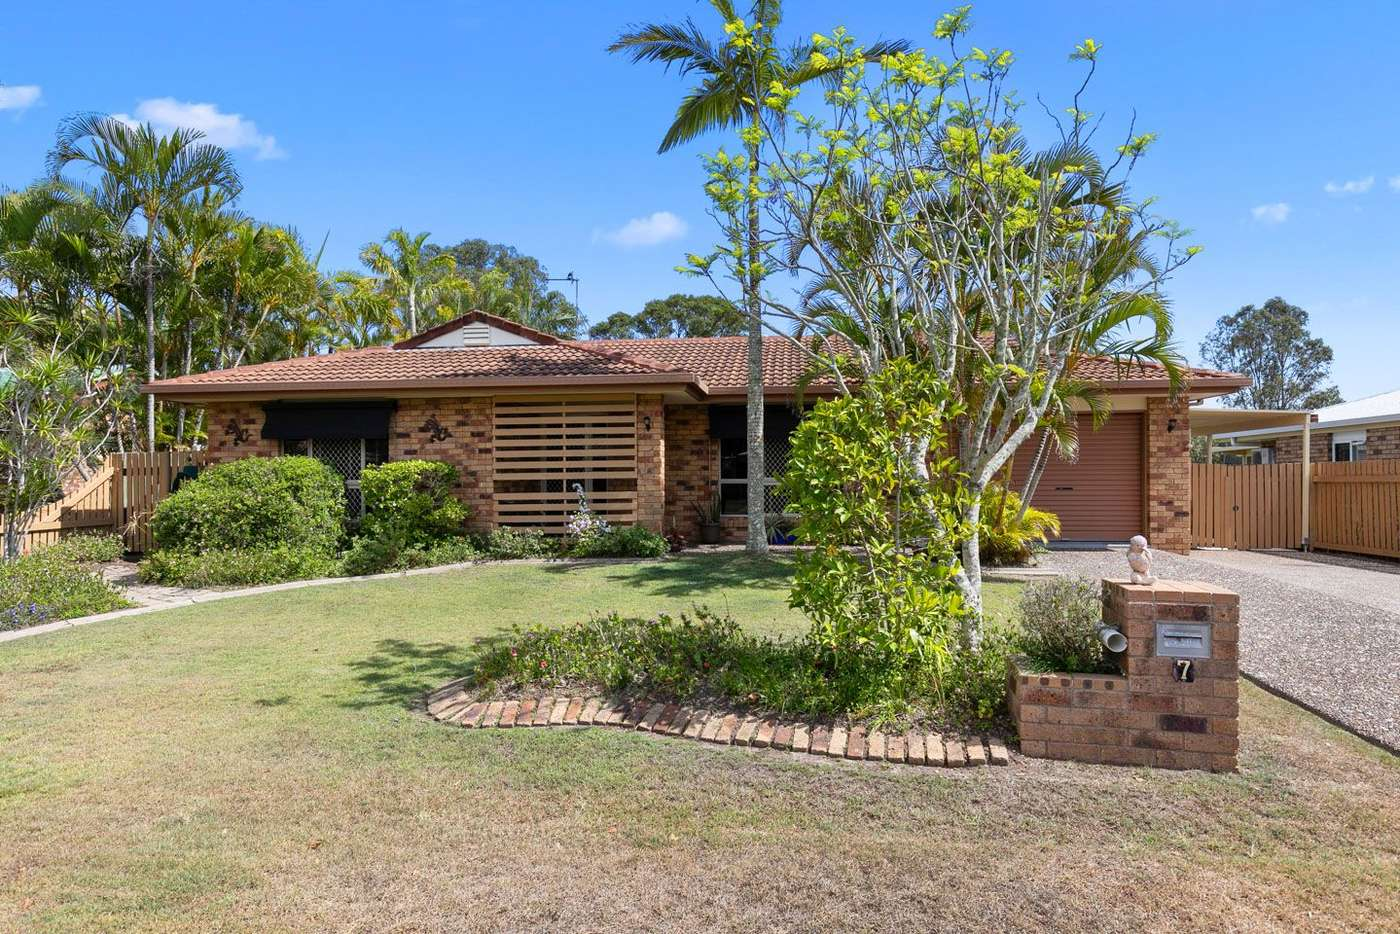 Main view of Homely house listing, 7 Bauhinia Drive, Kawungan QLD 4655